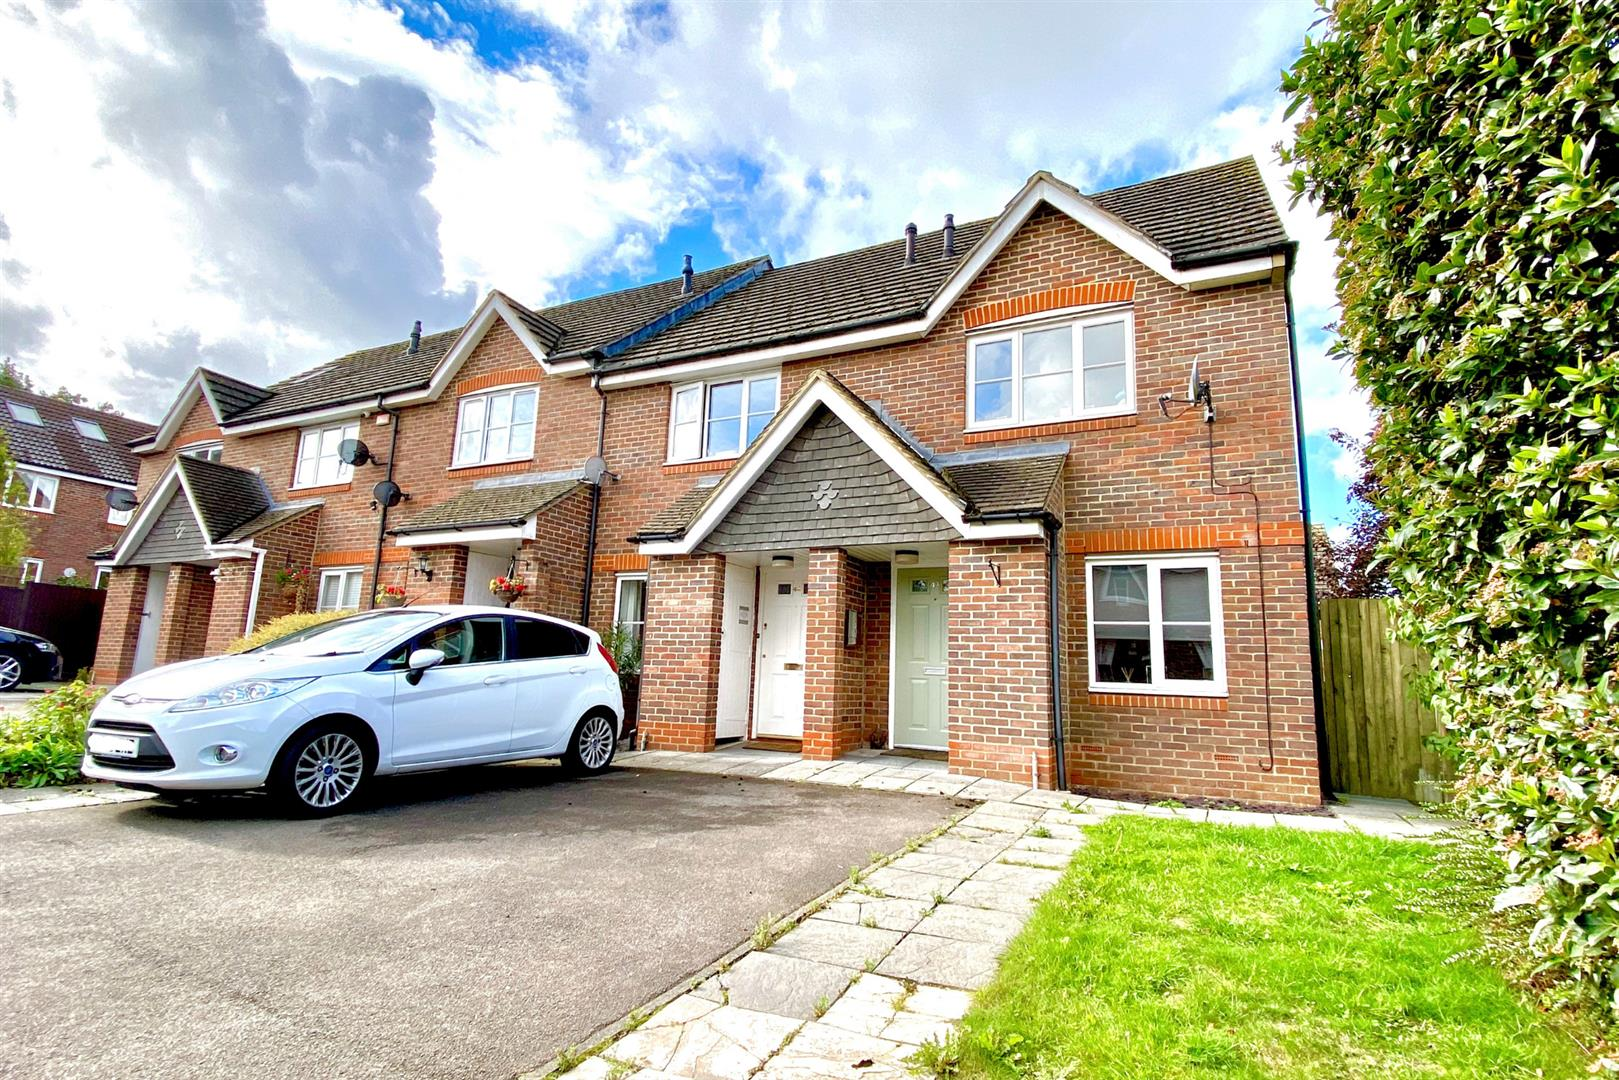 2 bed end of terrace for sale in Three Mile Cross 1